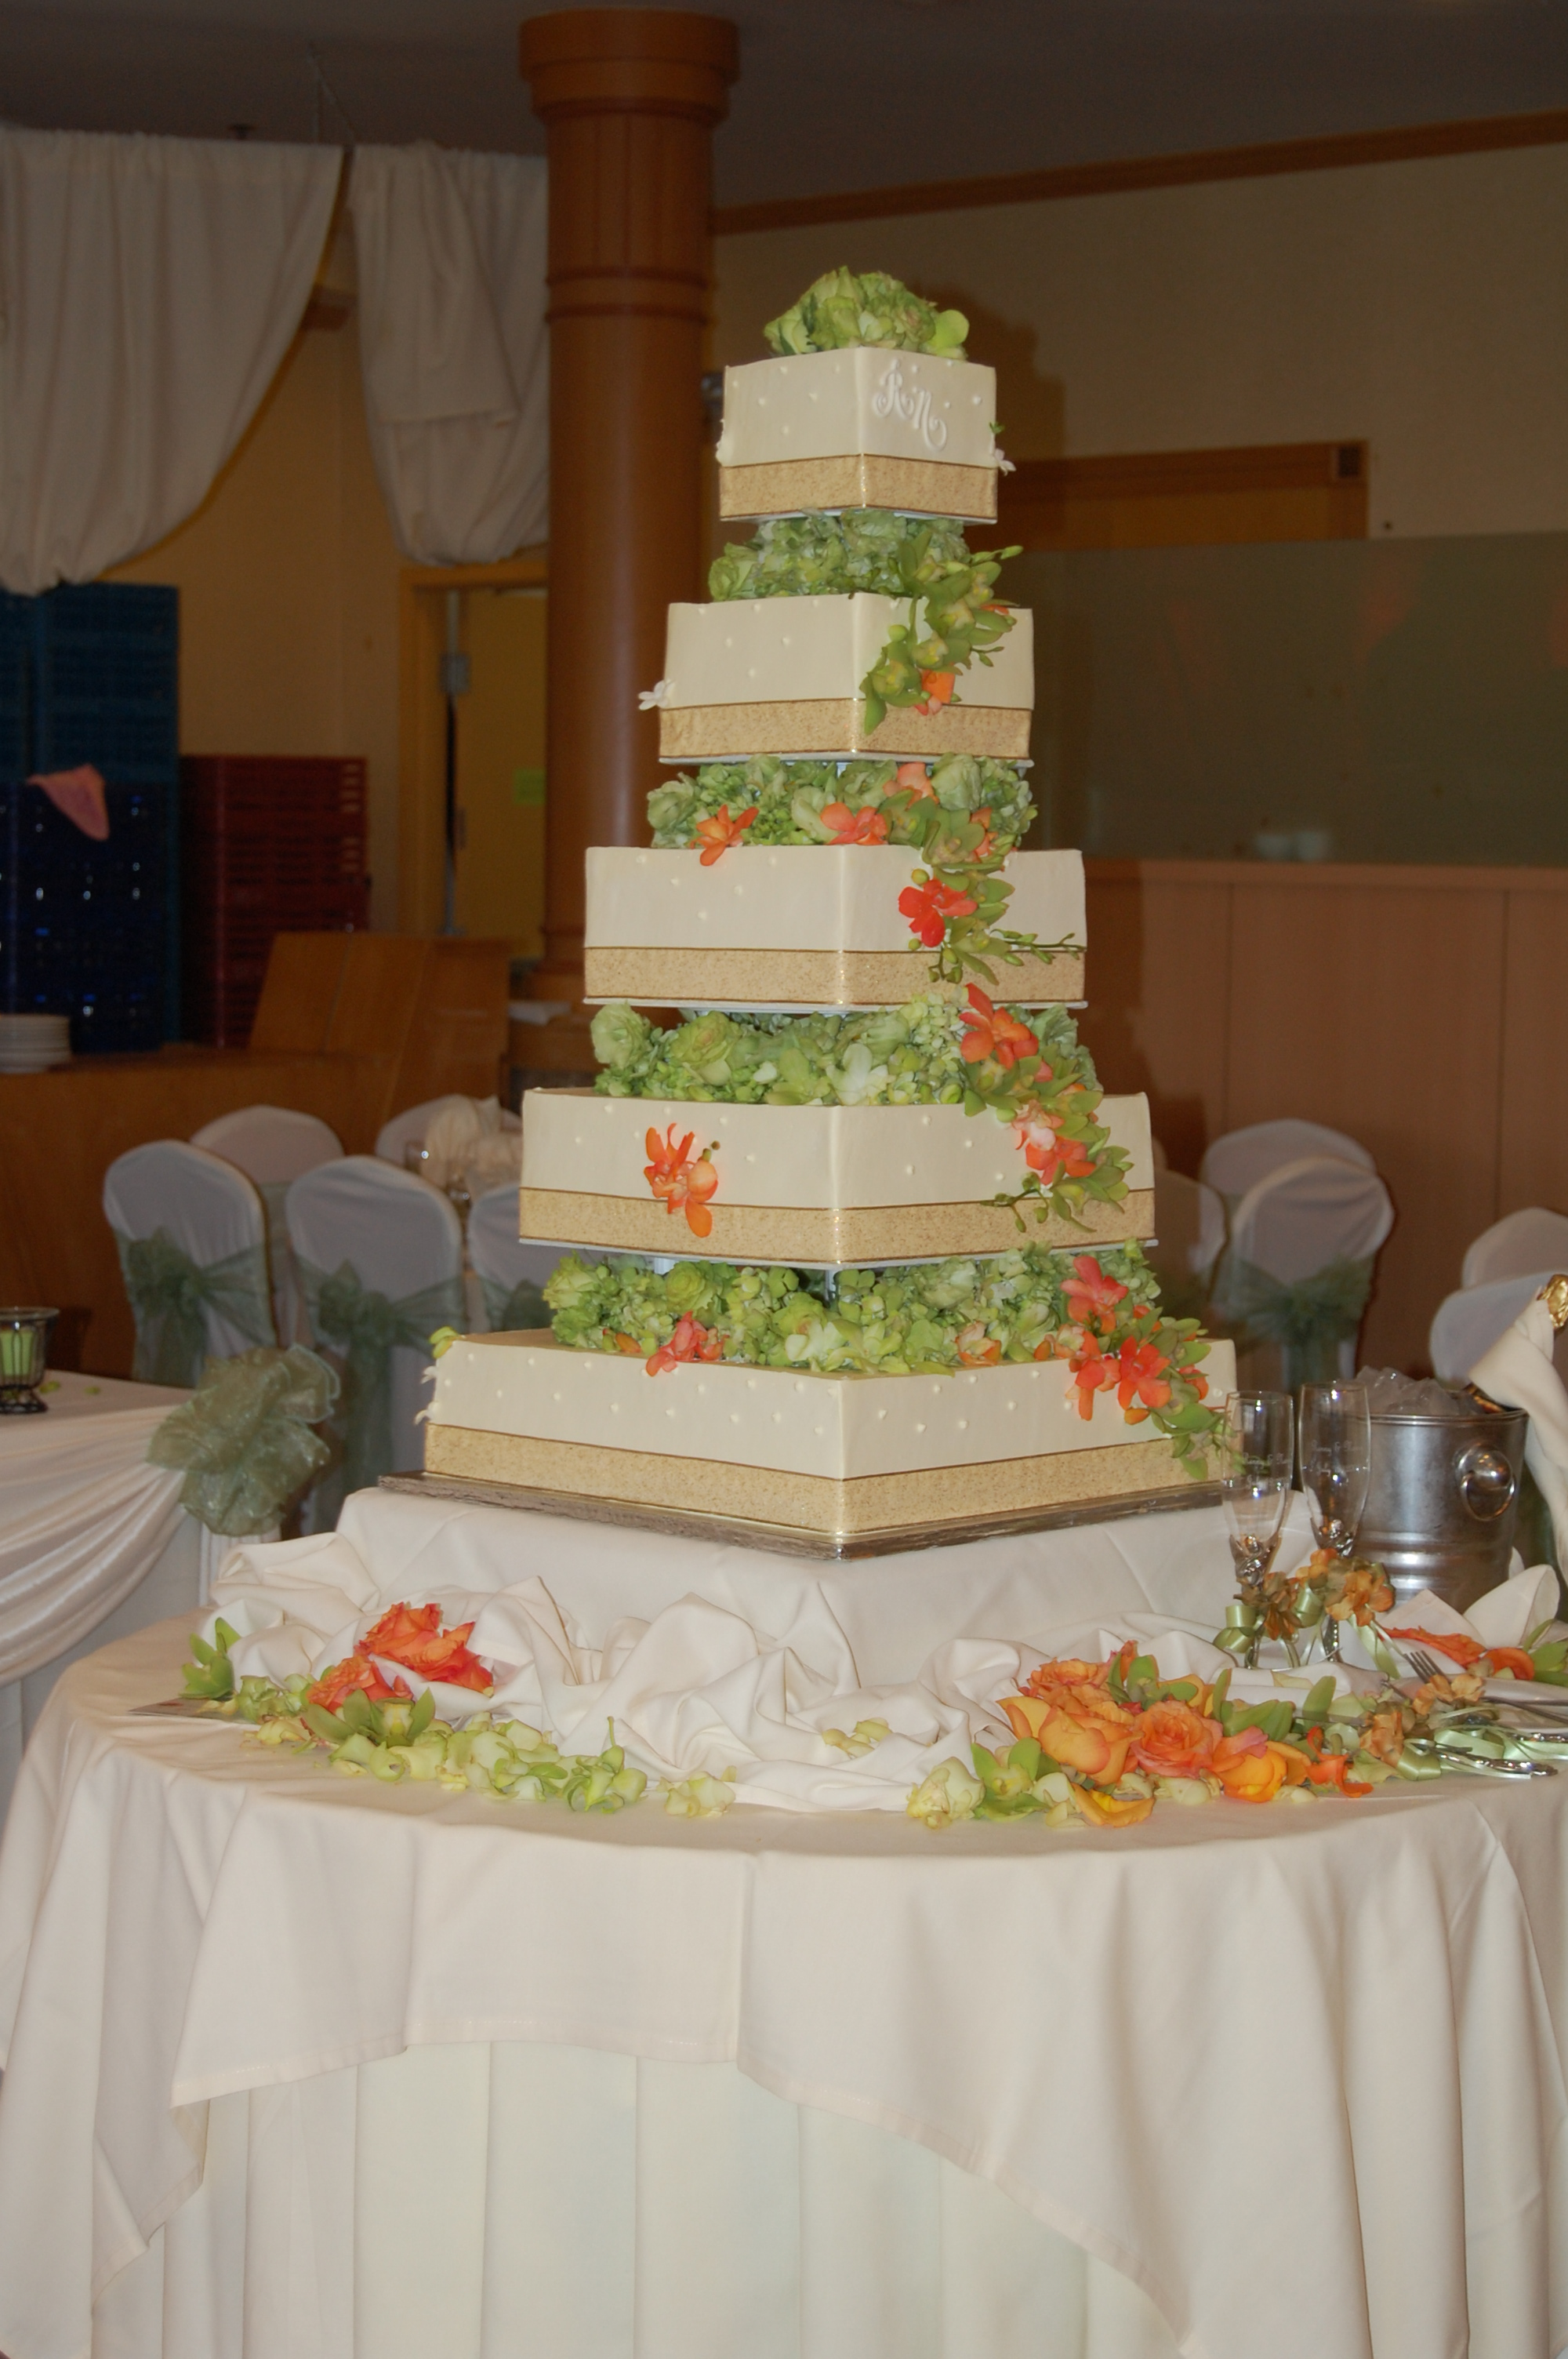 Flowers & Decor, Cakes, cake, Flower, Events by karen lee